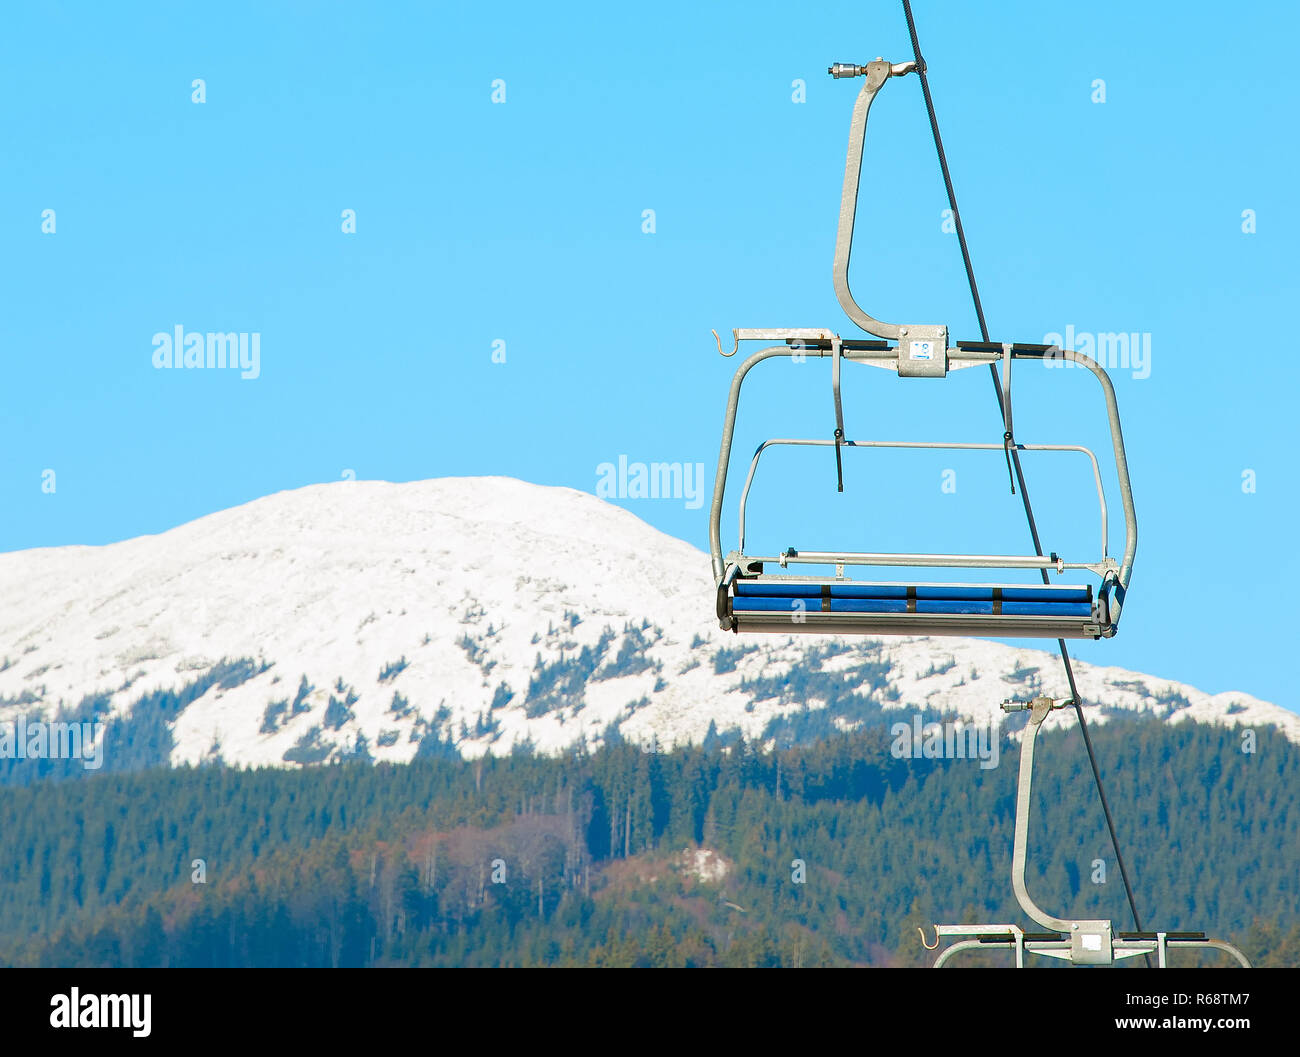 Cable cars at ski resort - Stock Image